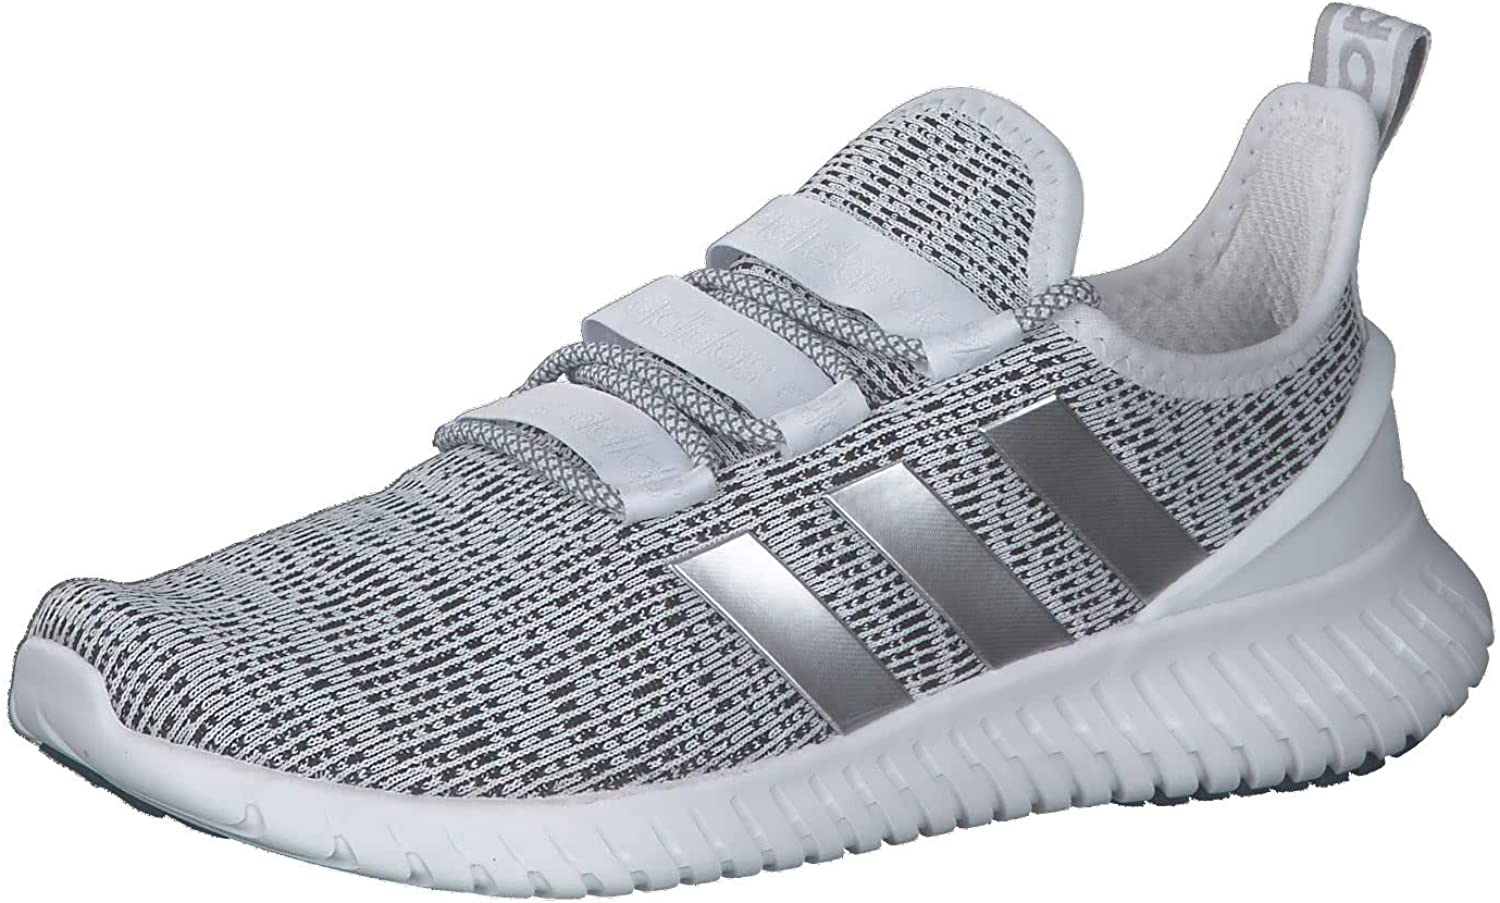 Sale Special Price Max 63% OFF adidas Men's Flat Shoes Sport